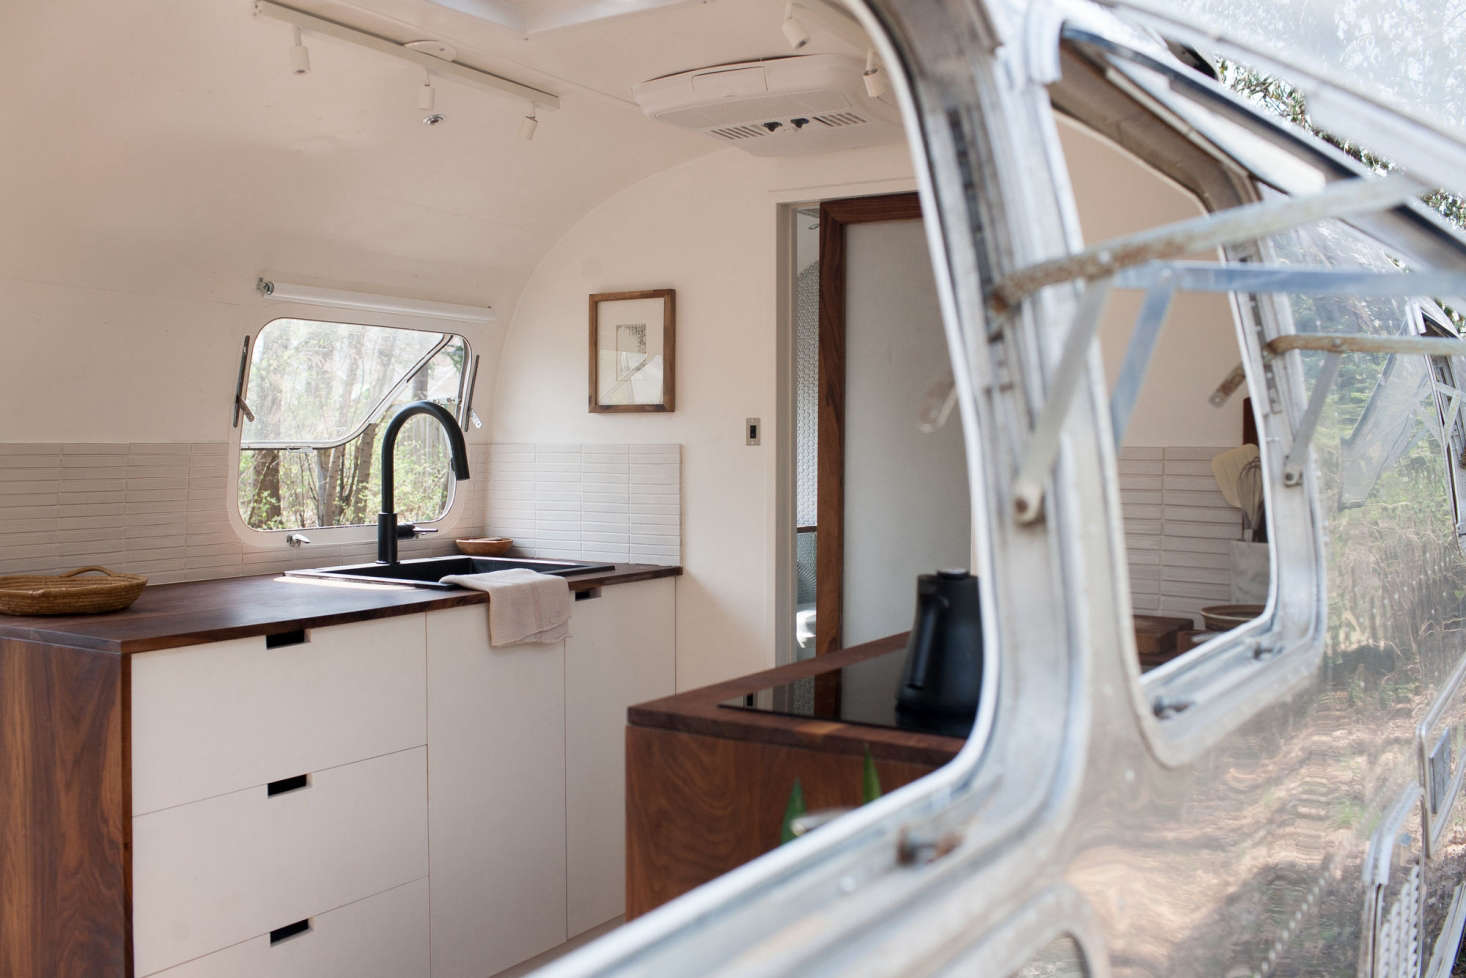 The Wood And Clean Lines Of Interior Contrast With Airstreams Sleek Silver Exterior